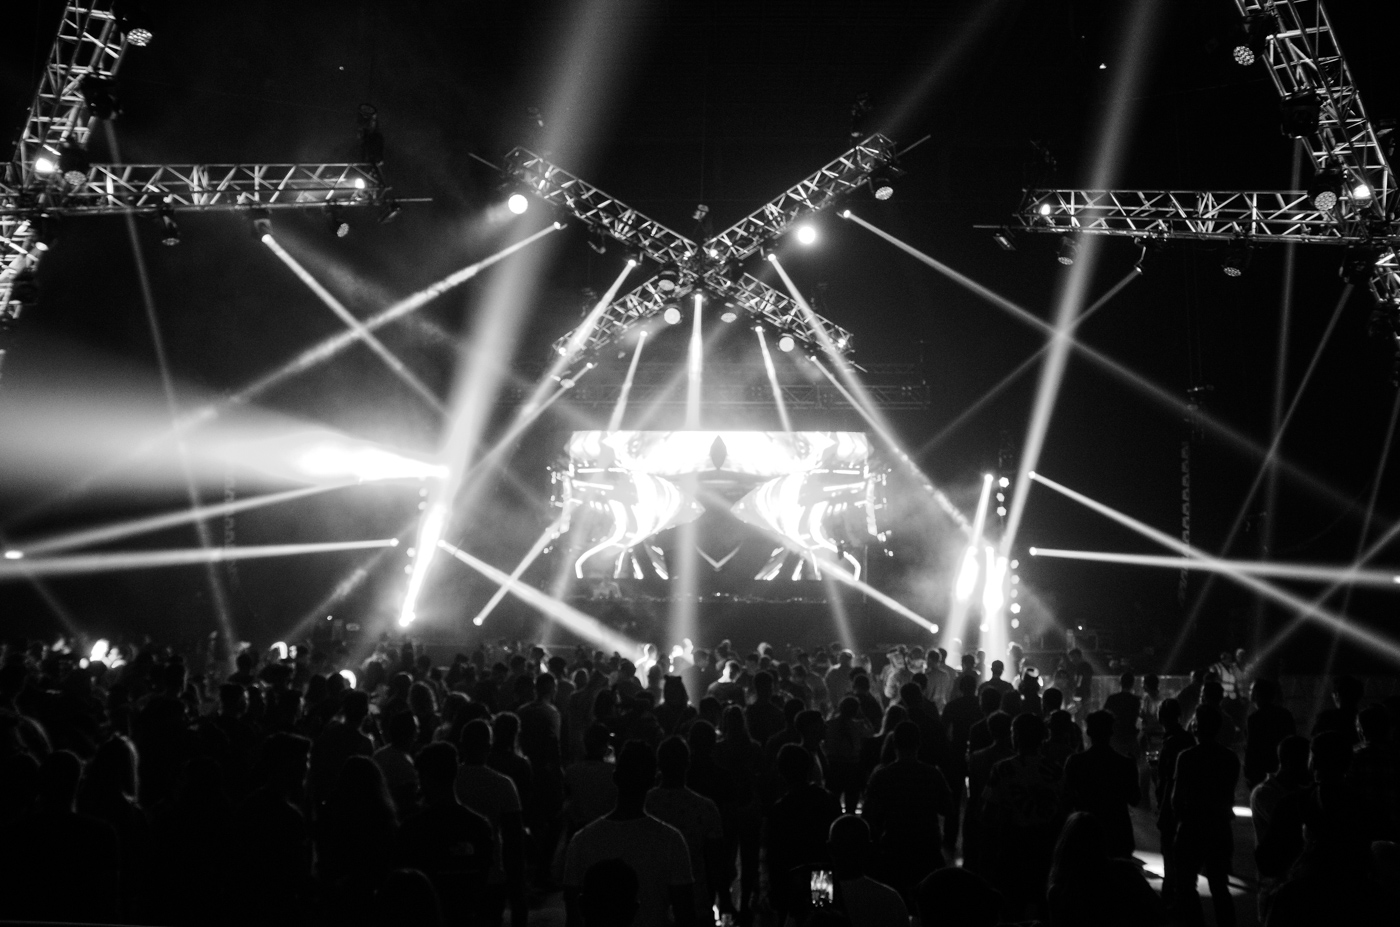 winterparty-at-3arena-dublin-30-10-2016-by-sean-smyth-8-of-53